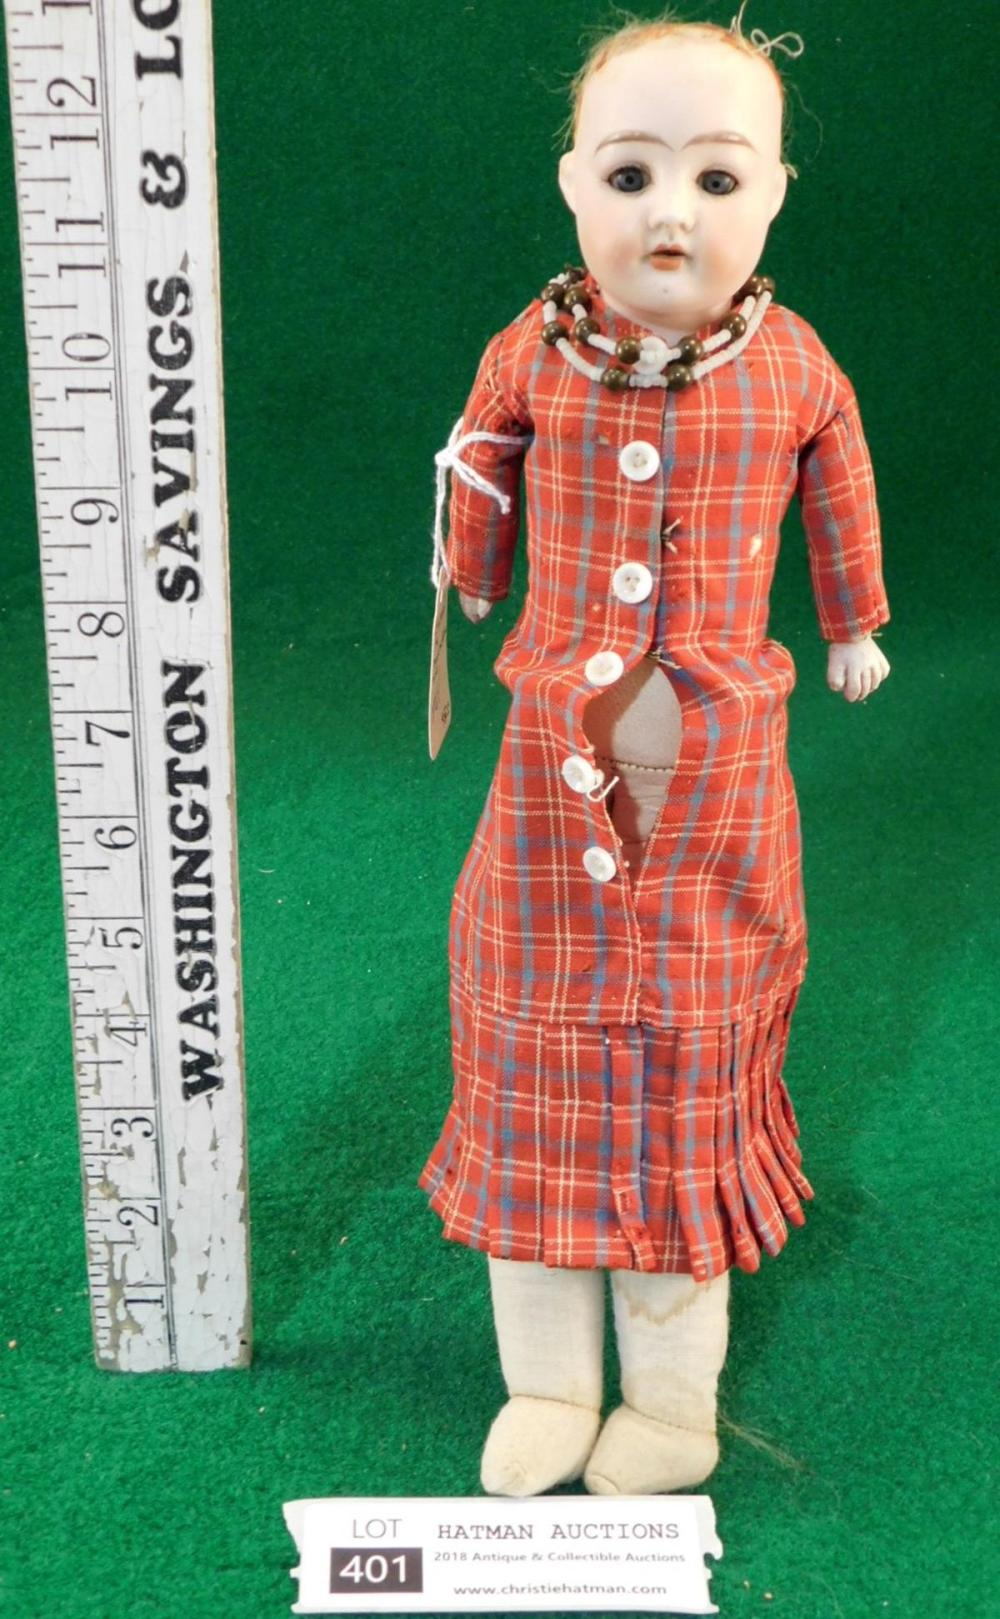 CUNO & OTTO DRESSEL 1896 BISQUE DOLL VINTAGE ANTIQUE